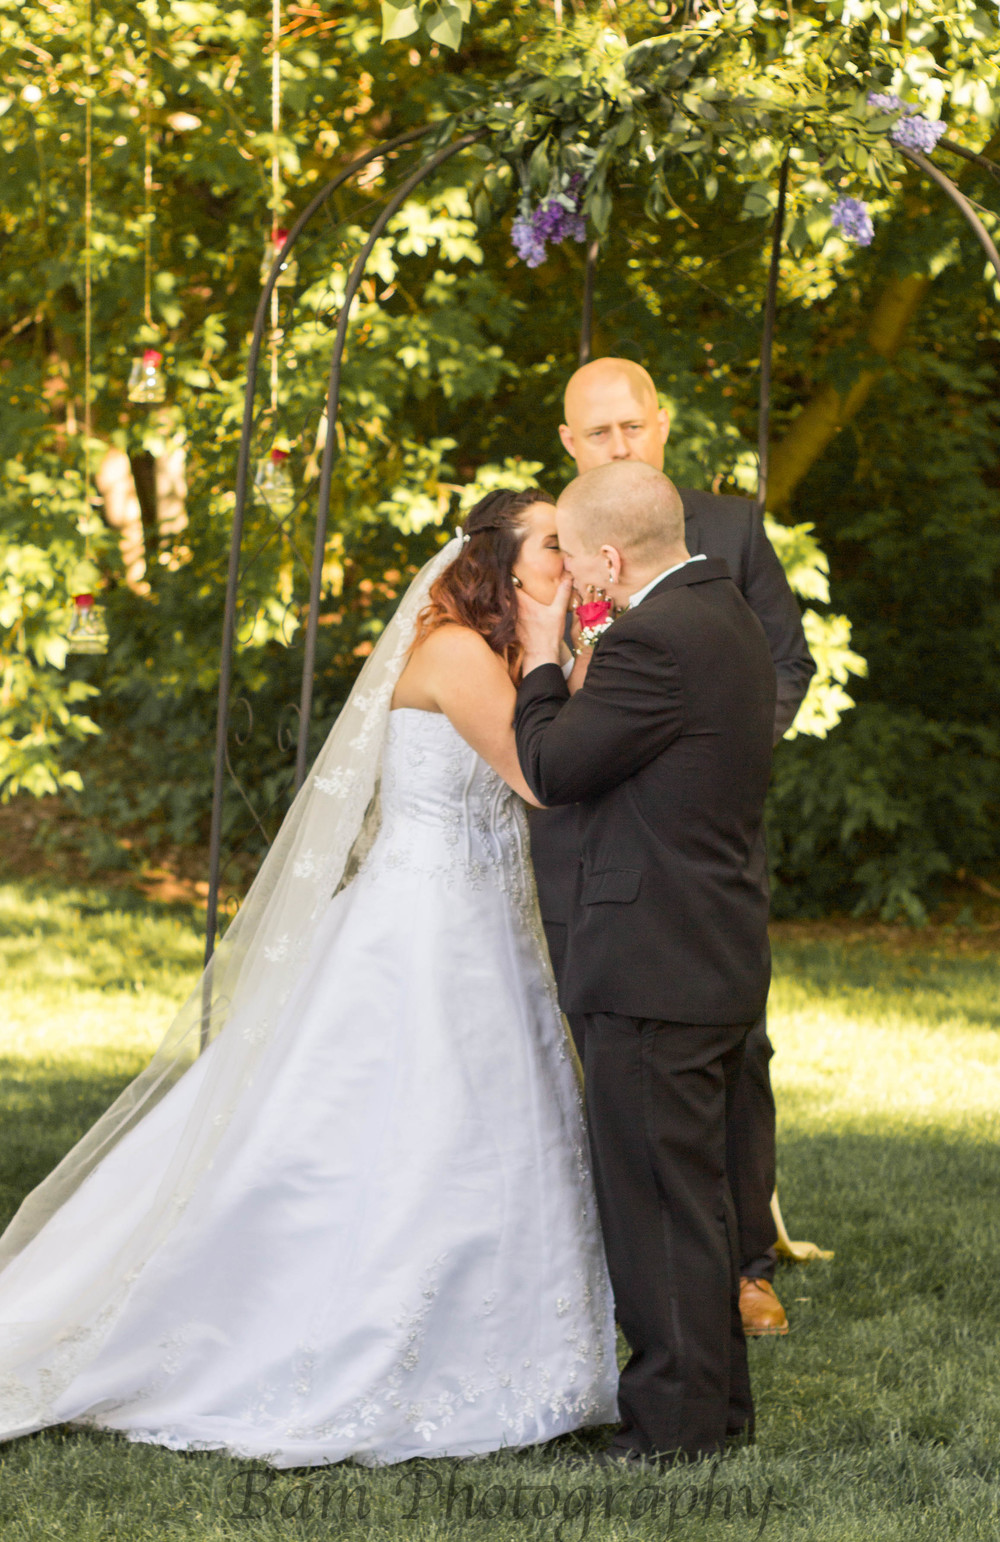 Married Kiss!